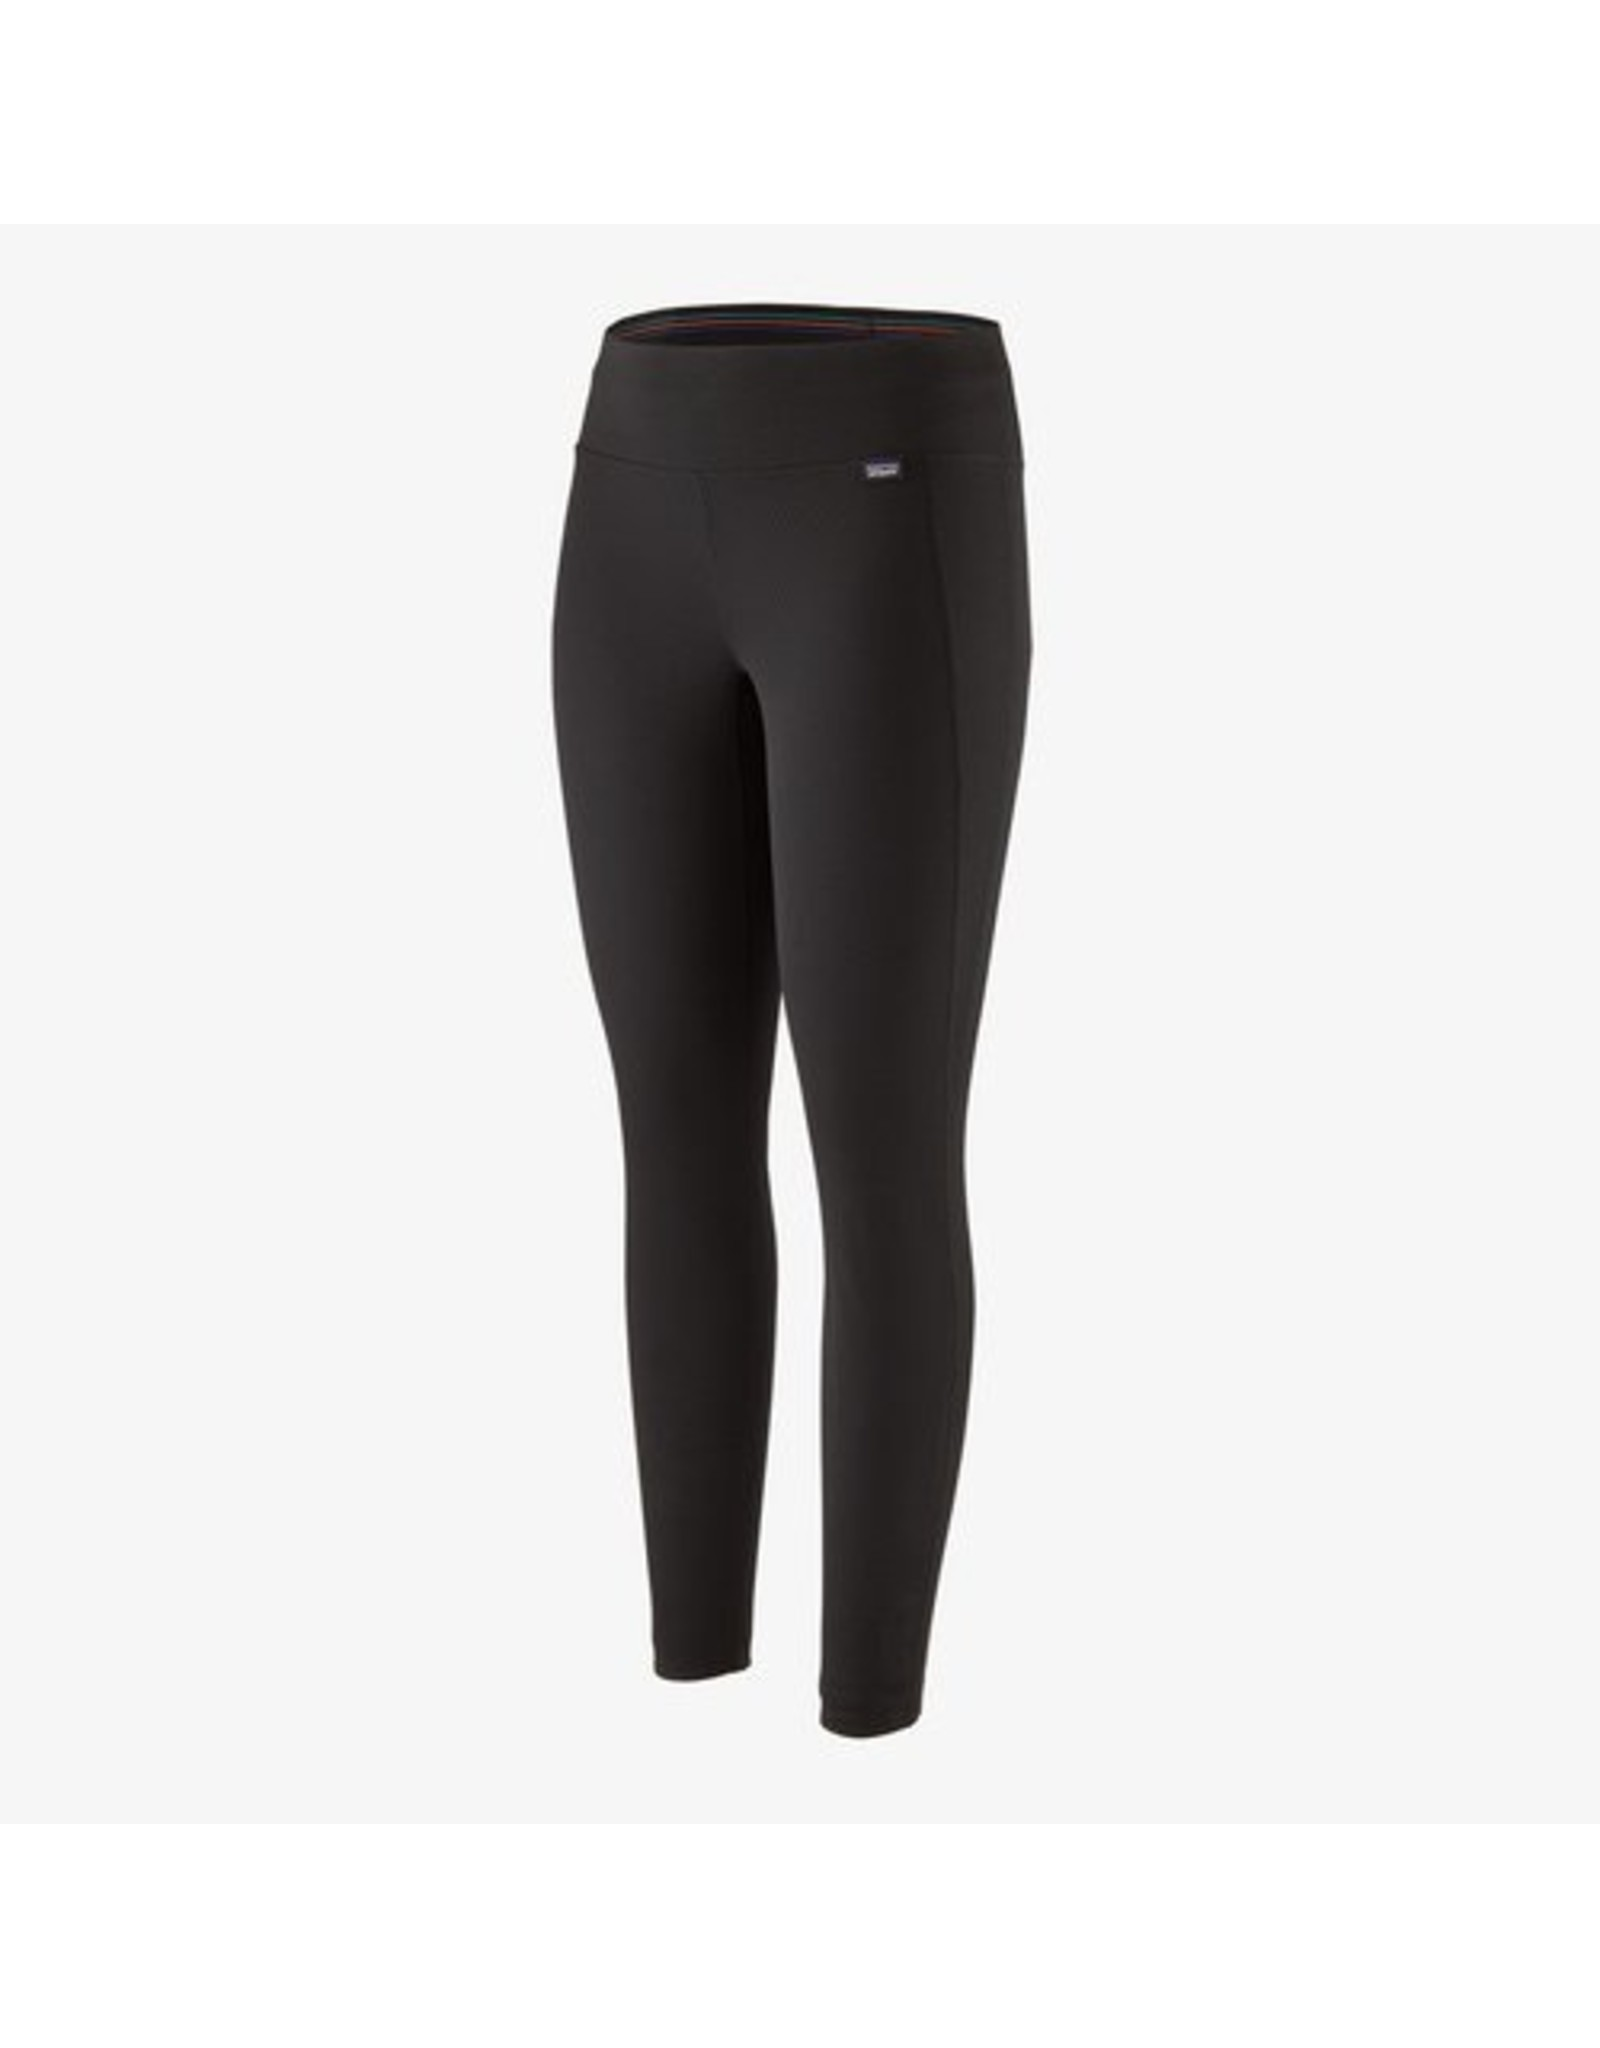 Patagonia Patagonia - W's Capilene Mid Weight Bottoms